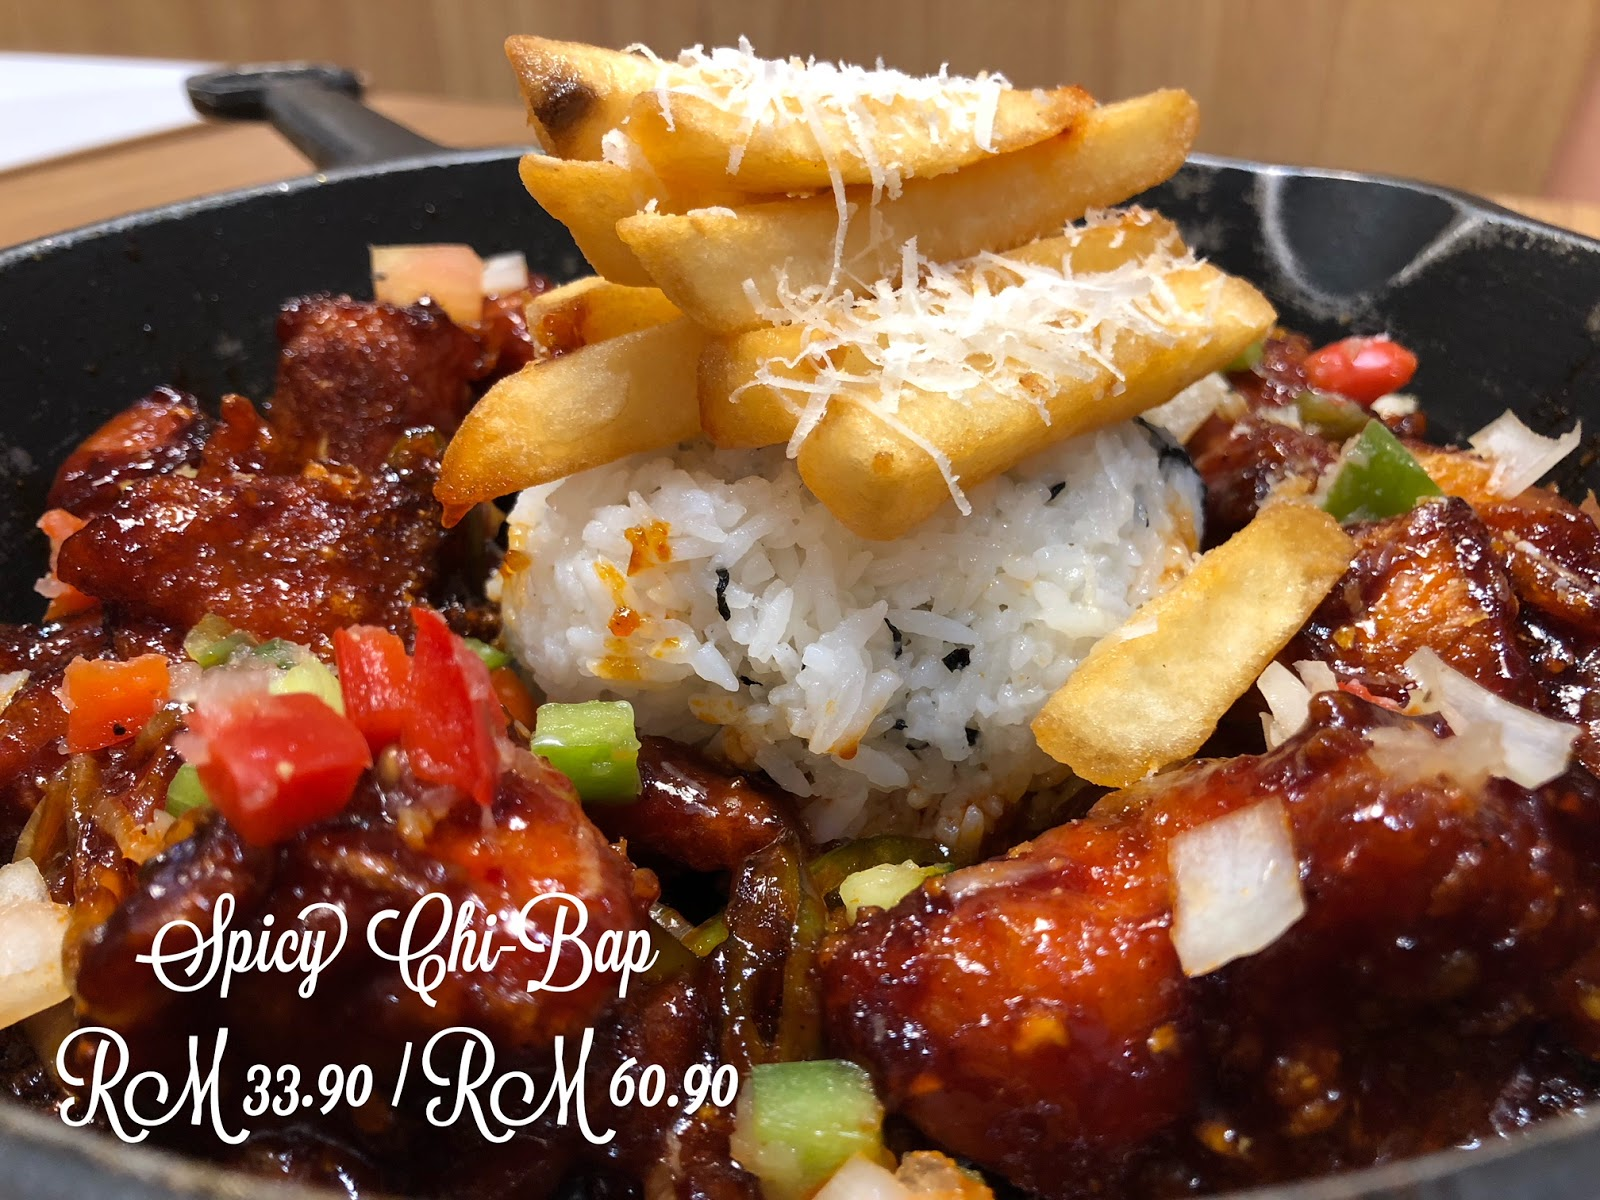 Chir Chir Fusion Chicken Factory Malaysia launched new dishes